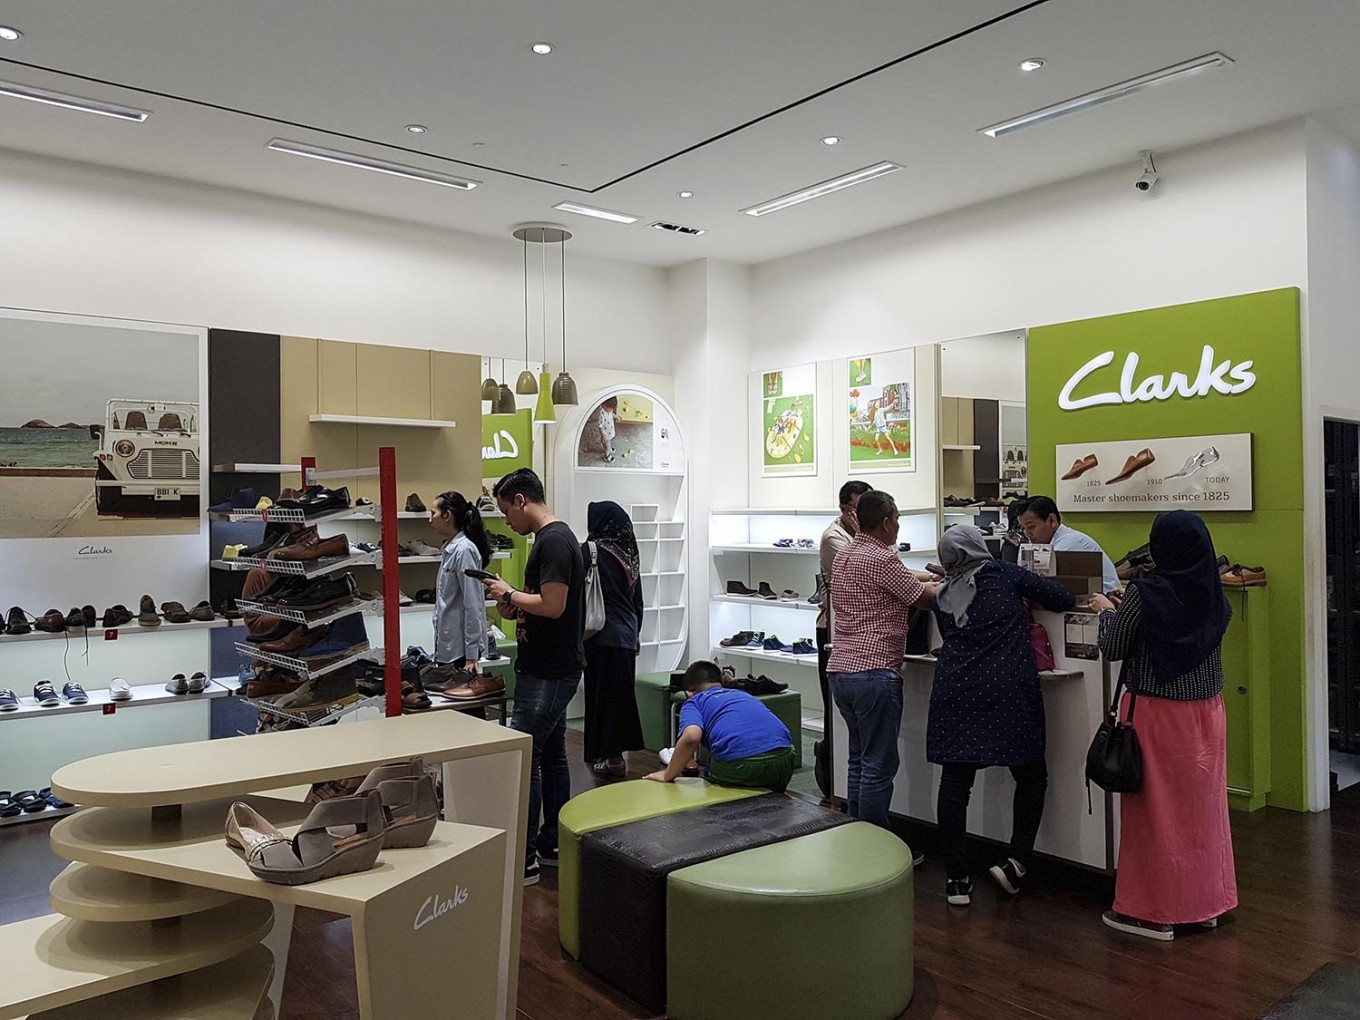 Good Prices yet not vulgar highly coveted range of Clarks, Kickers closing stores in Indonesia - Business - The ...